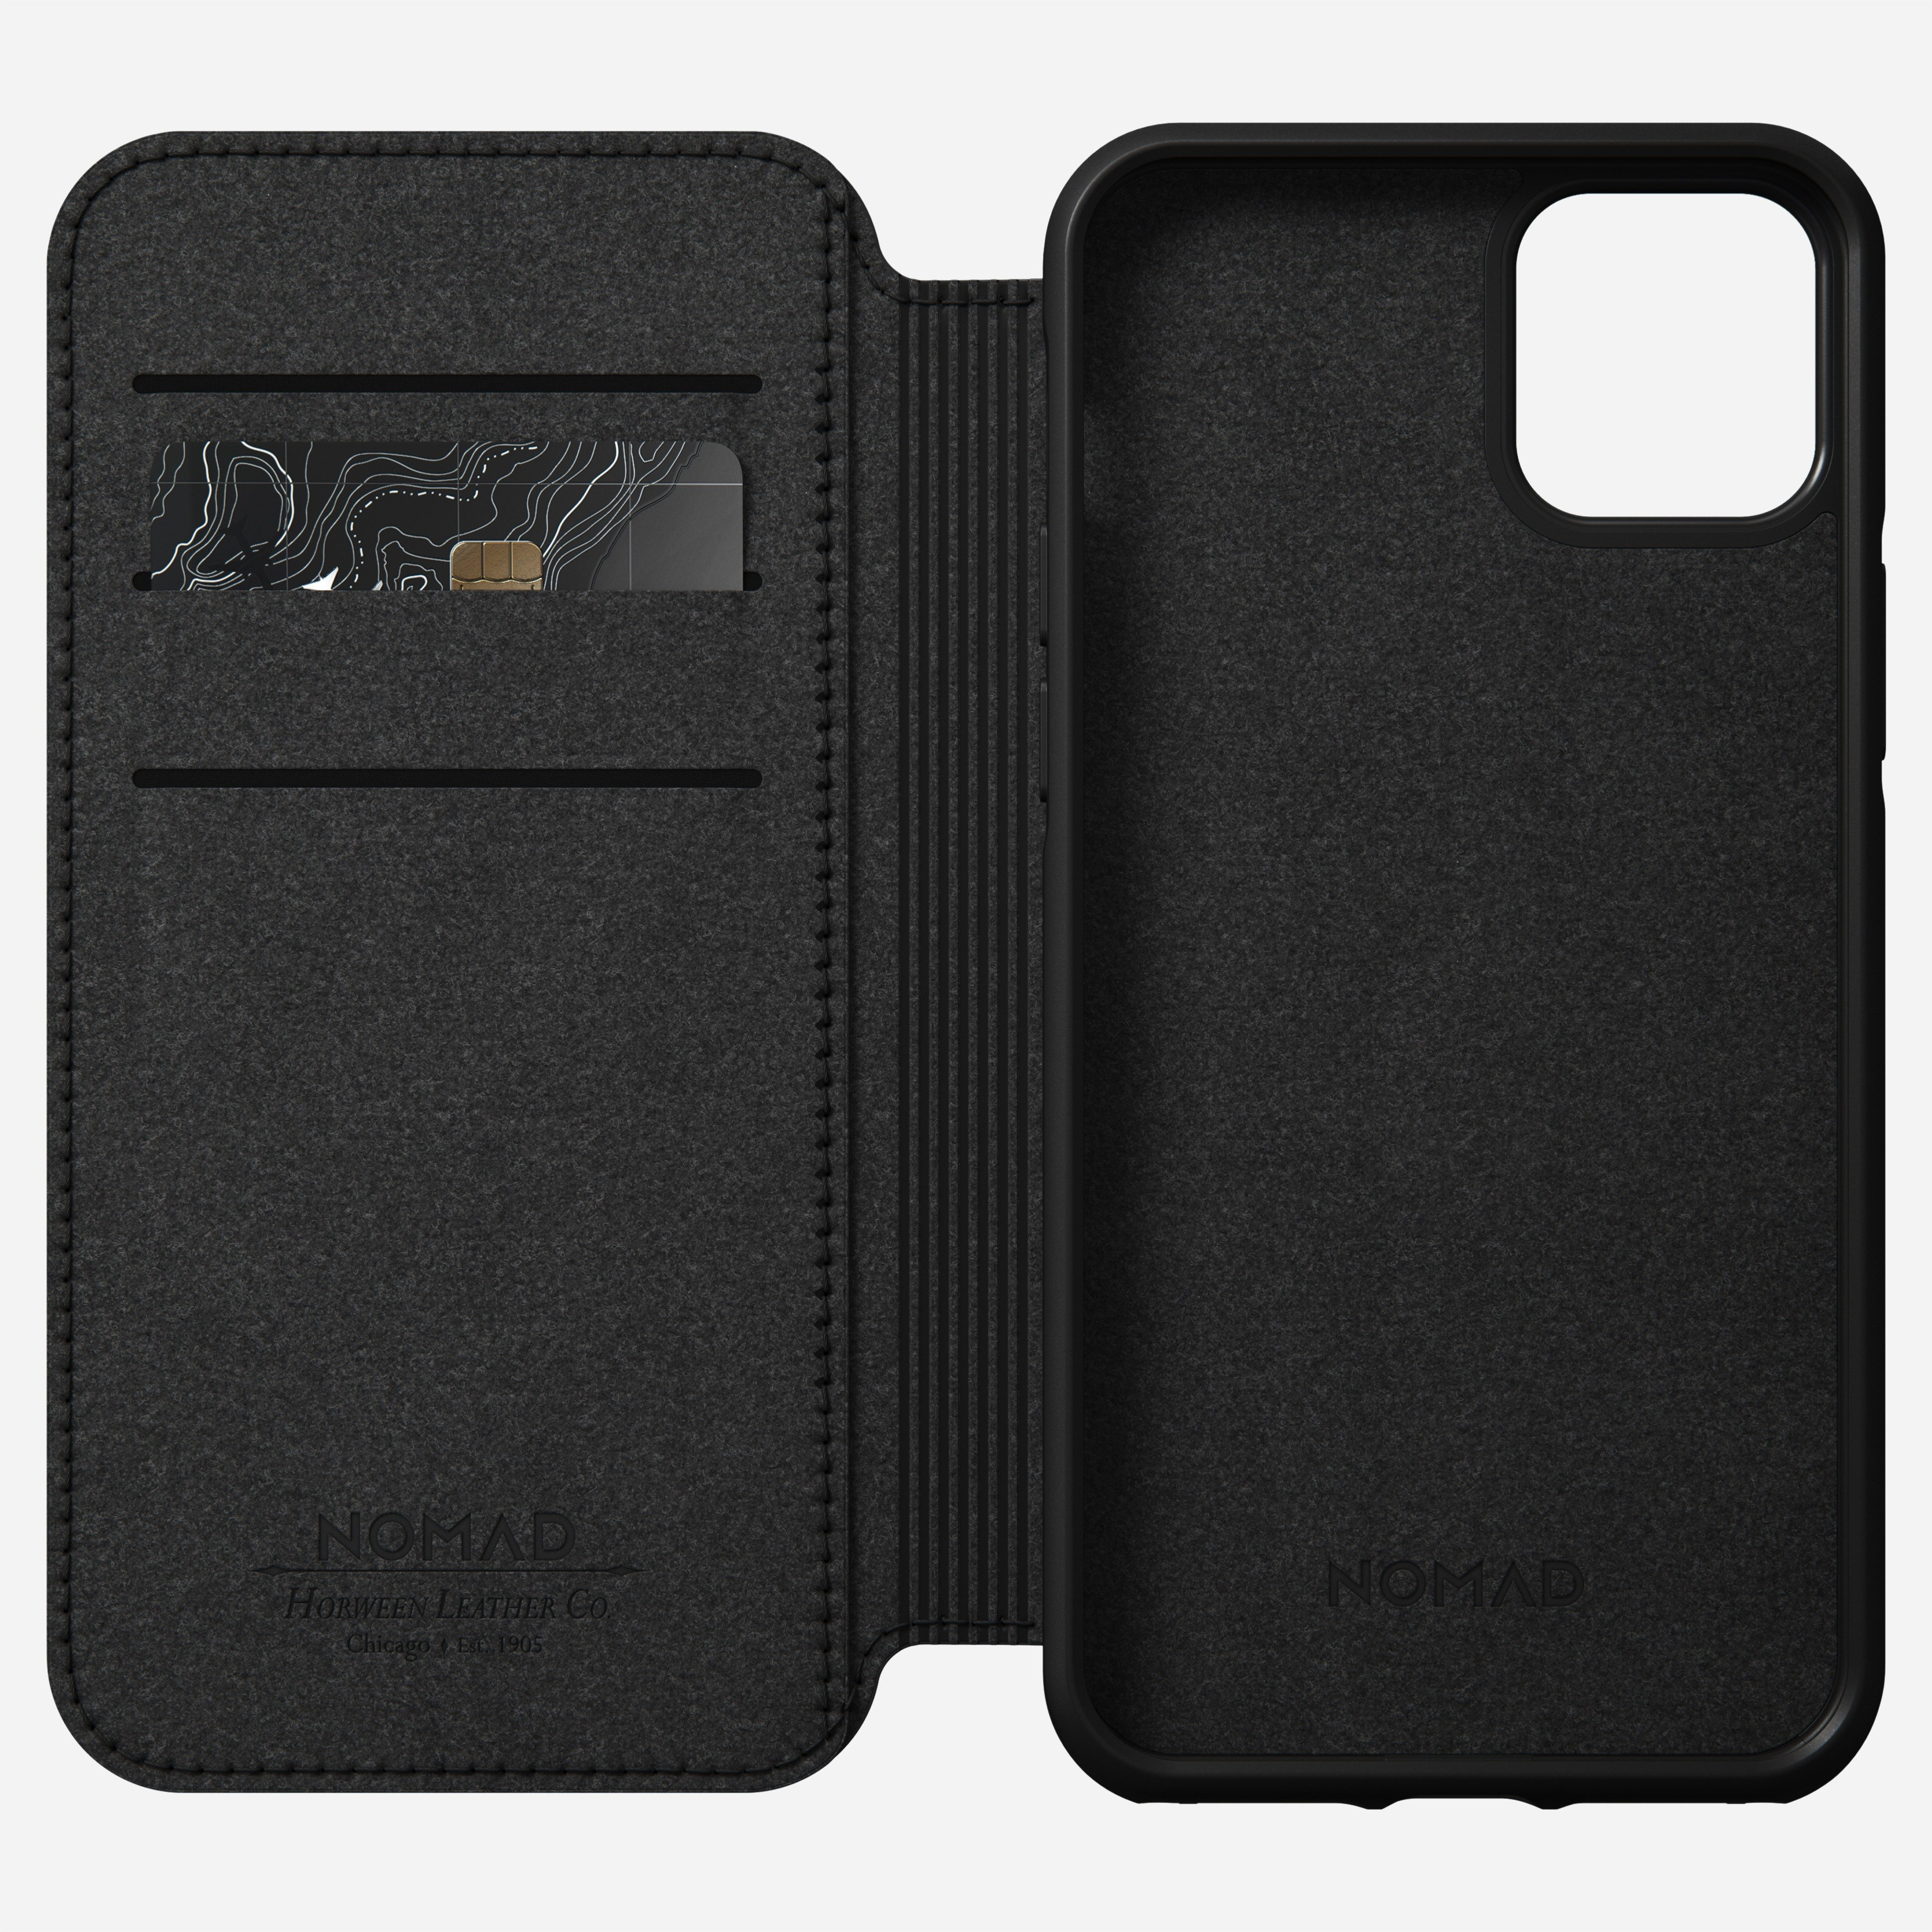 Rugged folio horween leather black iphone 12